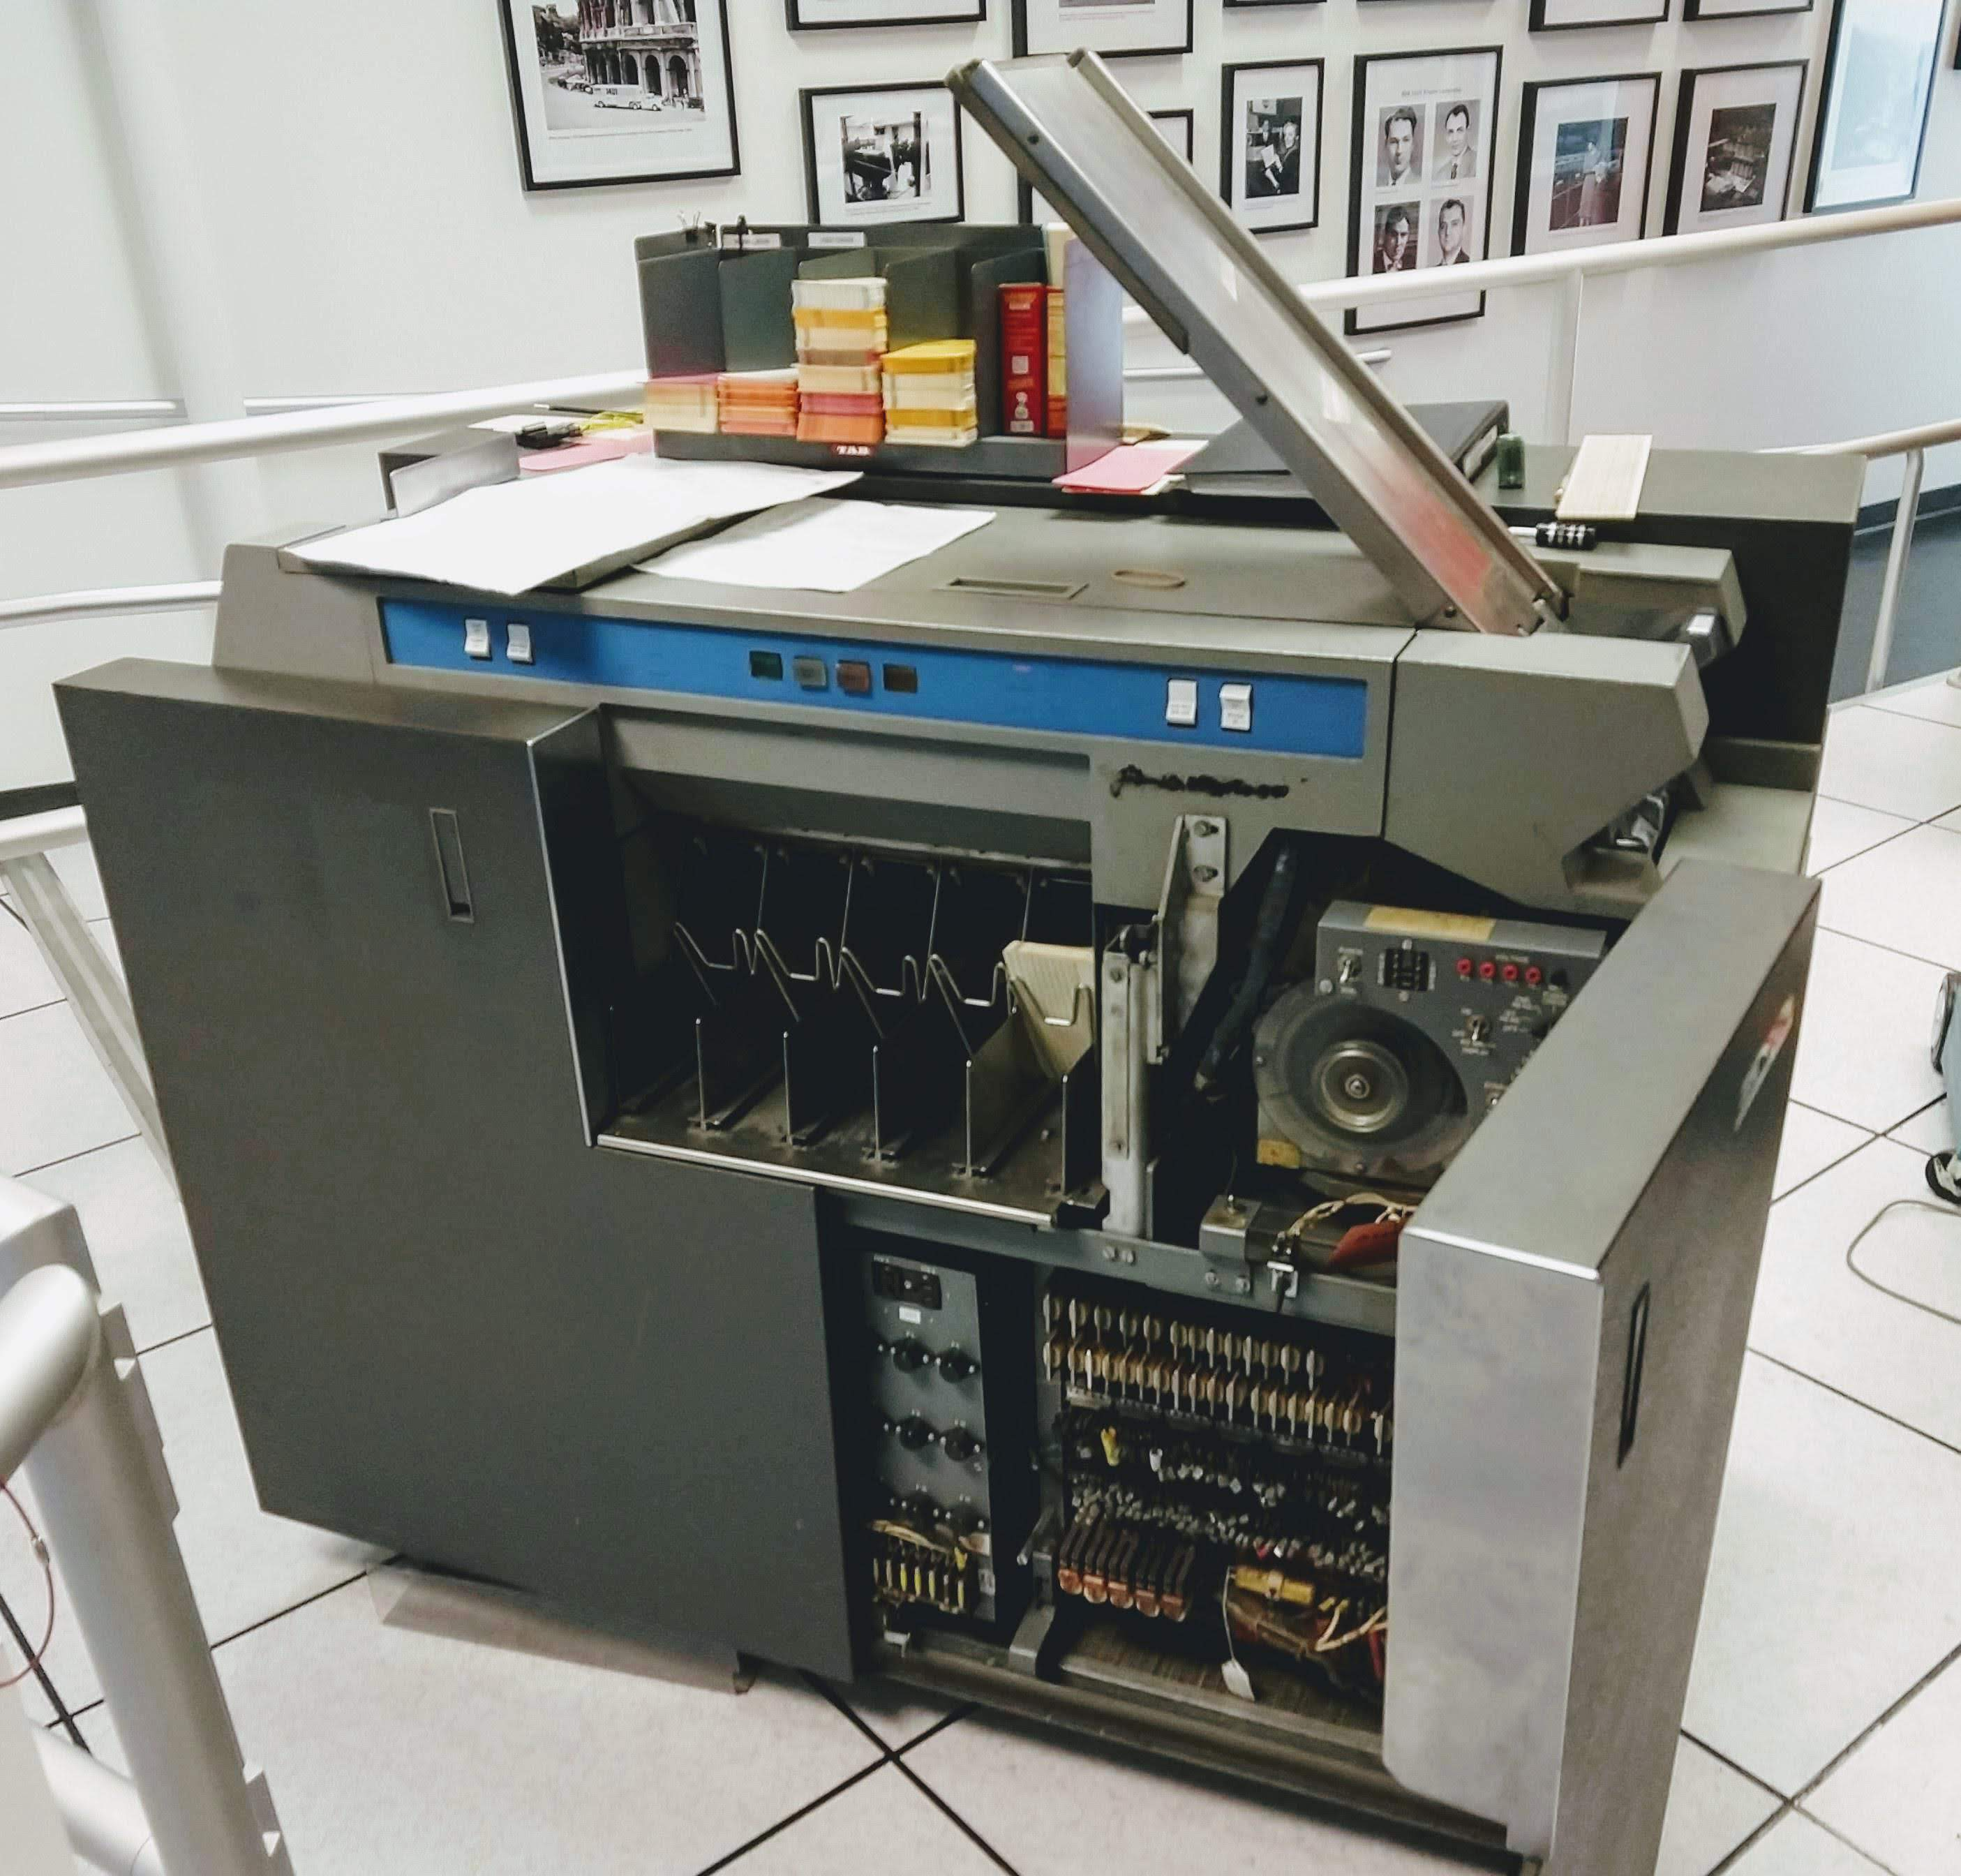 Bad relay: Fixing the card reader for a vintage IBM 1401 mainframe